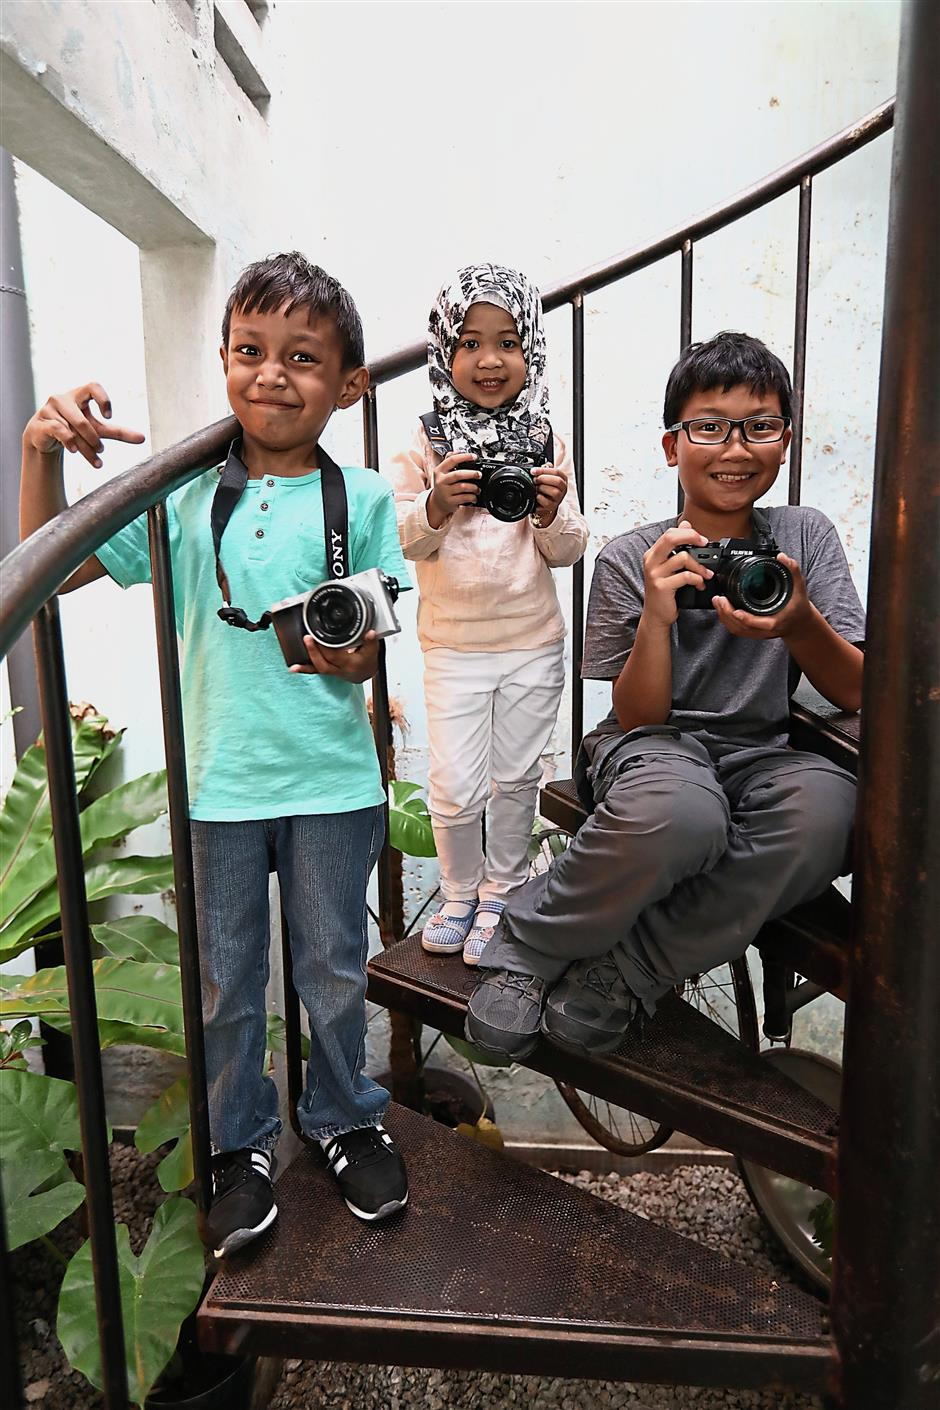 (From left) Muhammad Ayman, Wan Siti and WeiZheng are part of the 10 youngsters featured in Petrons' Cerita Kita television commercial.